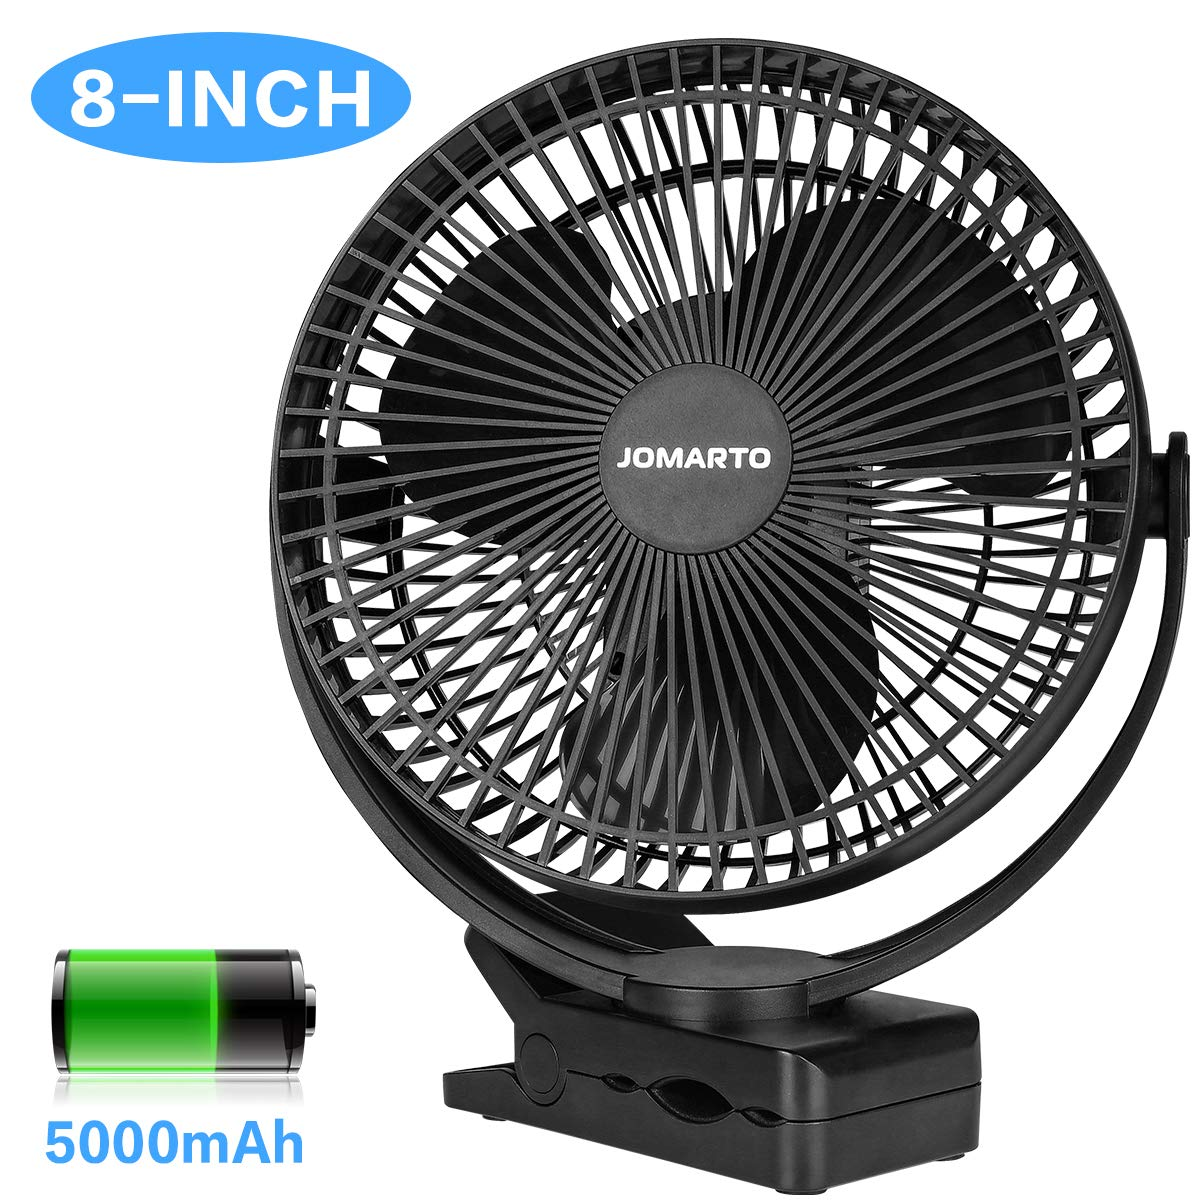 JOMARTO Desk Clip on Fan, Battery Operated Fan with 5000mAh, 4 Speeds Strong Clamping Portable Cooling USB Rechargeable Fan for Baby Stroller Crib Treadmill Office Outdoor